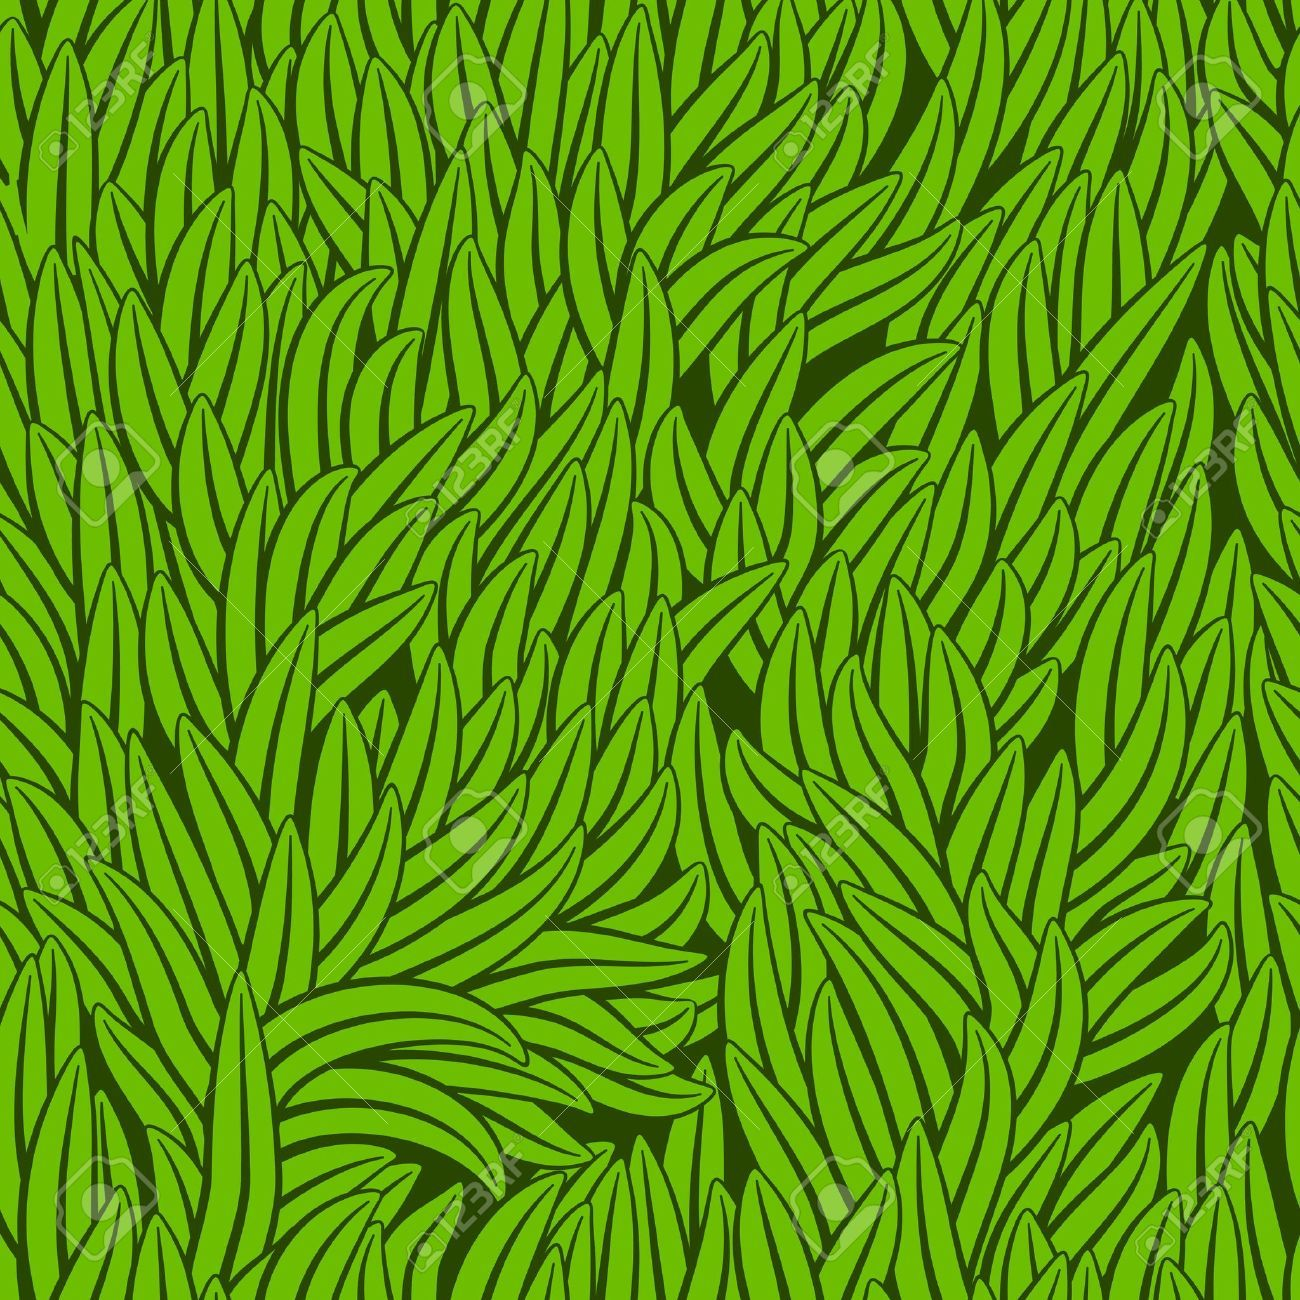 Grass Pattern Illustrator Google Search Impact Earth